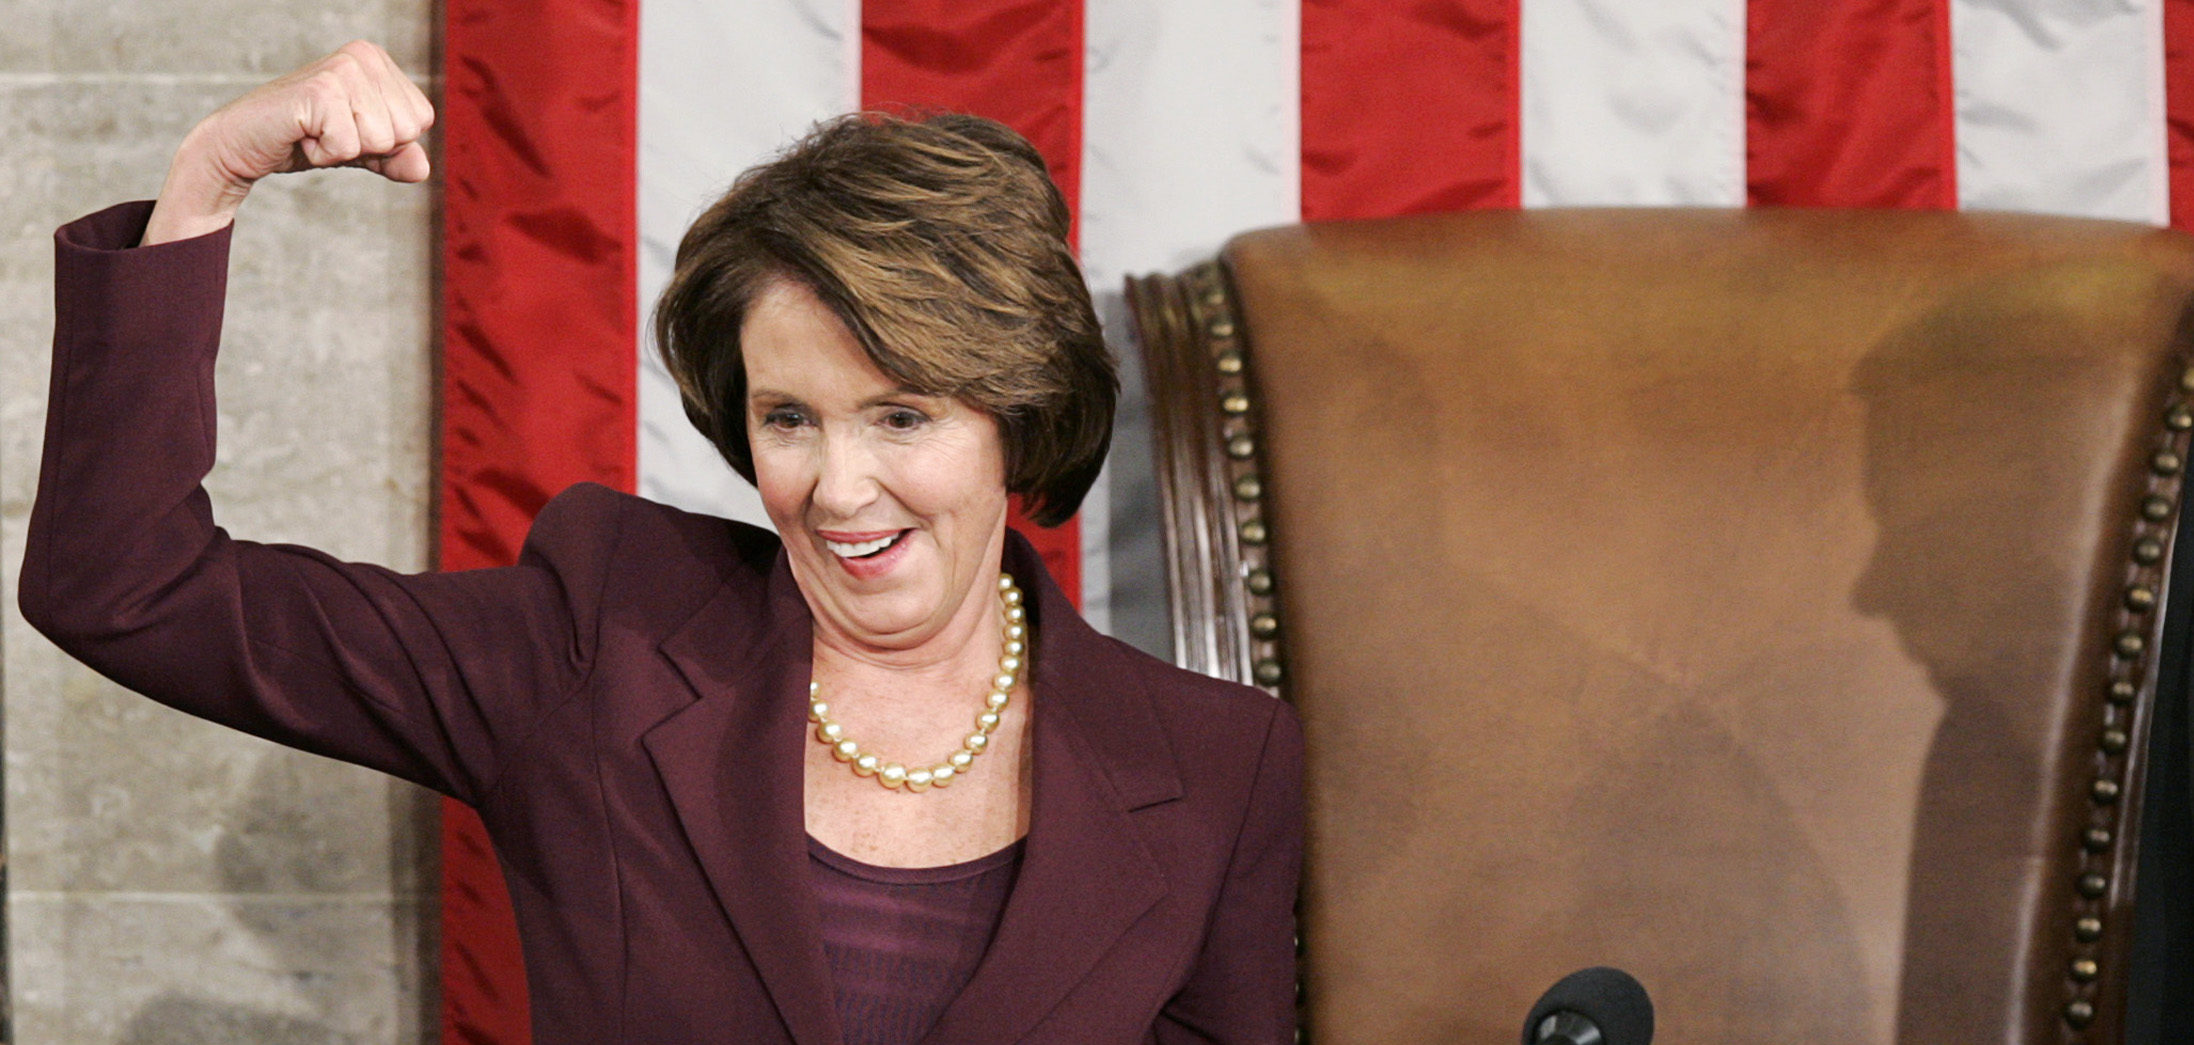 U.S. Speaker of the House Nancy Pelosi (D-CA) reacts as she takes the podium for the first time after she was elected the first ever female Speaker of the U.S. House of Representatives on the first day of the 110th Congress in Washington January 4, 2007. REUTERS/Larry Downing